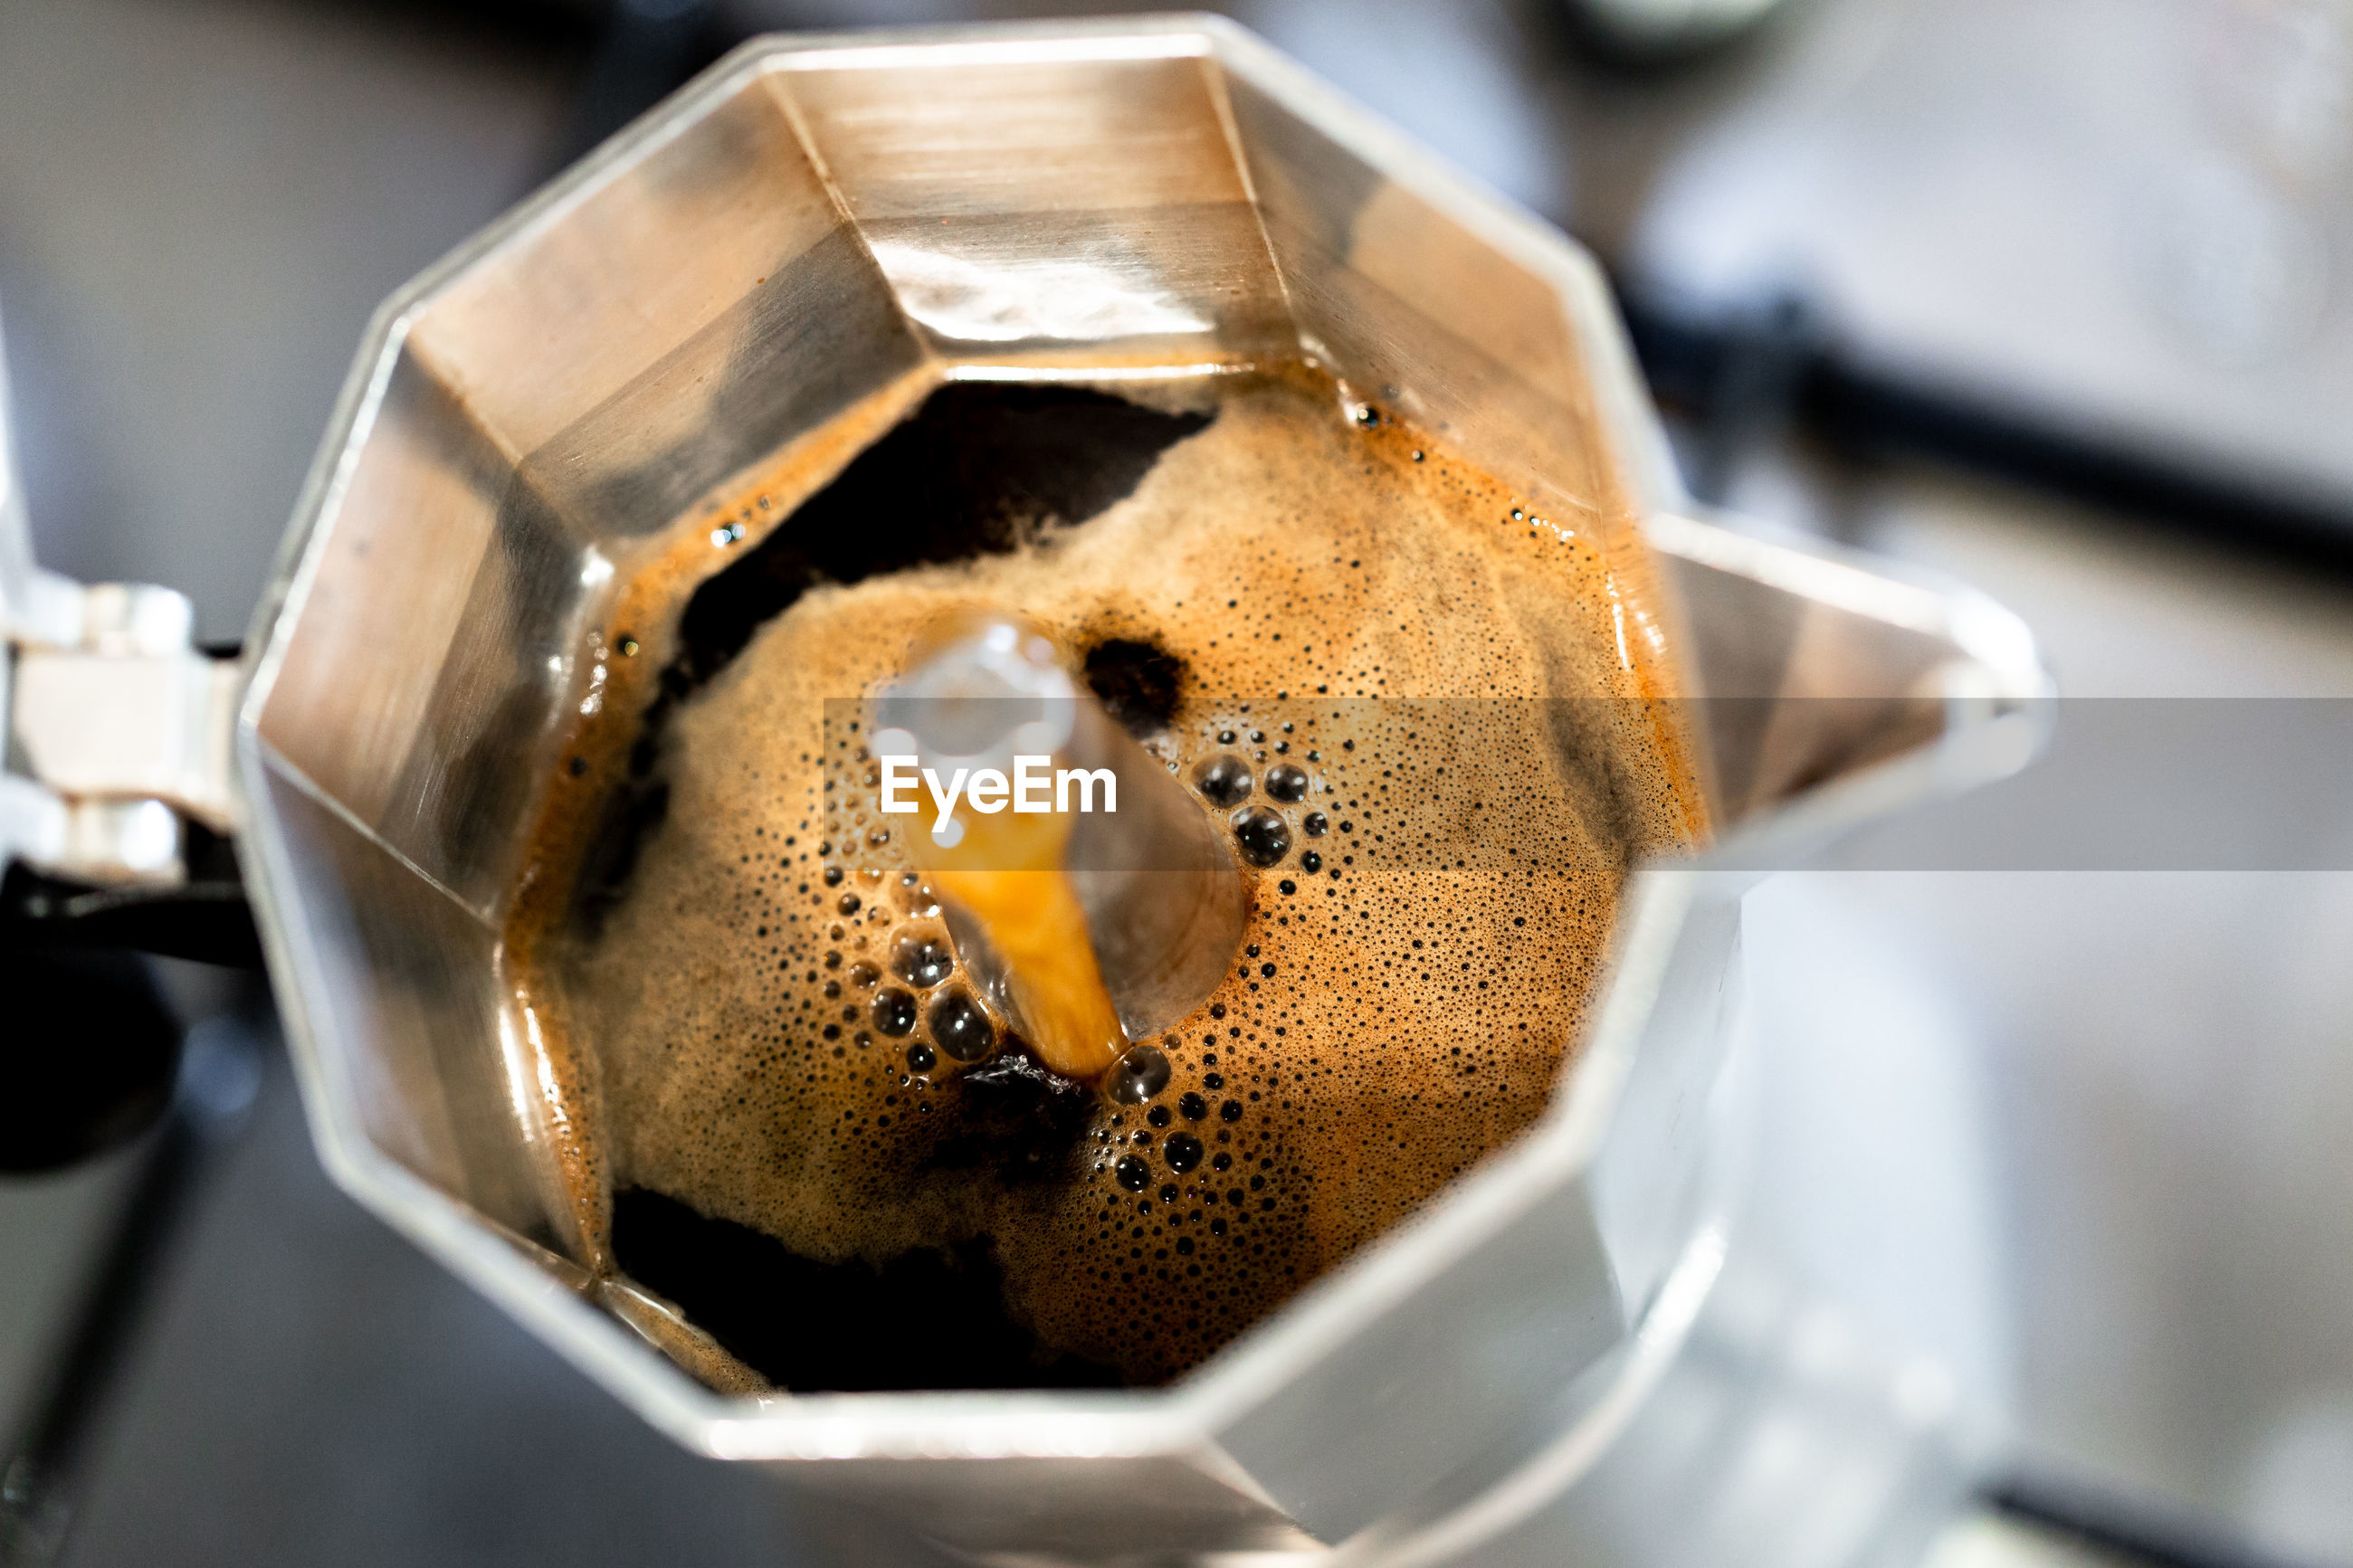 HIGH ANGLE VIEW OF COFFEE IN CUP ON TRAY